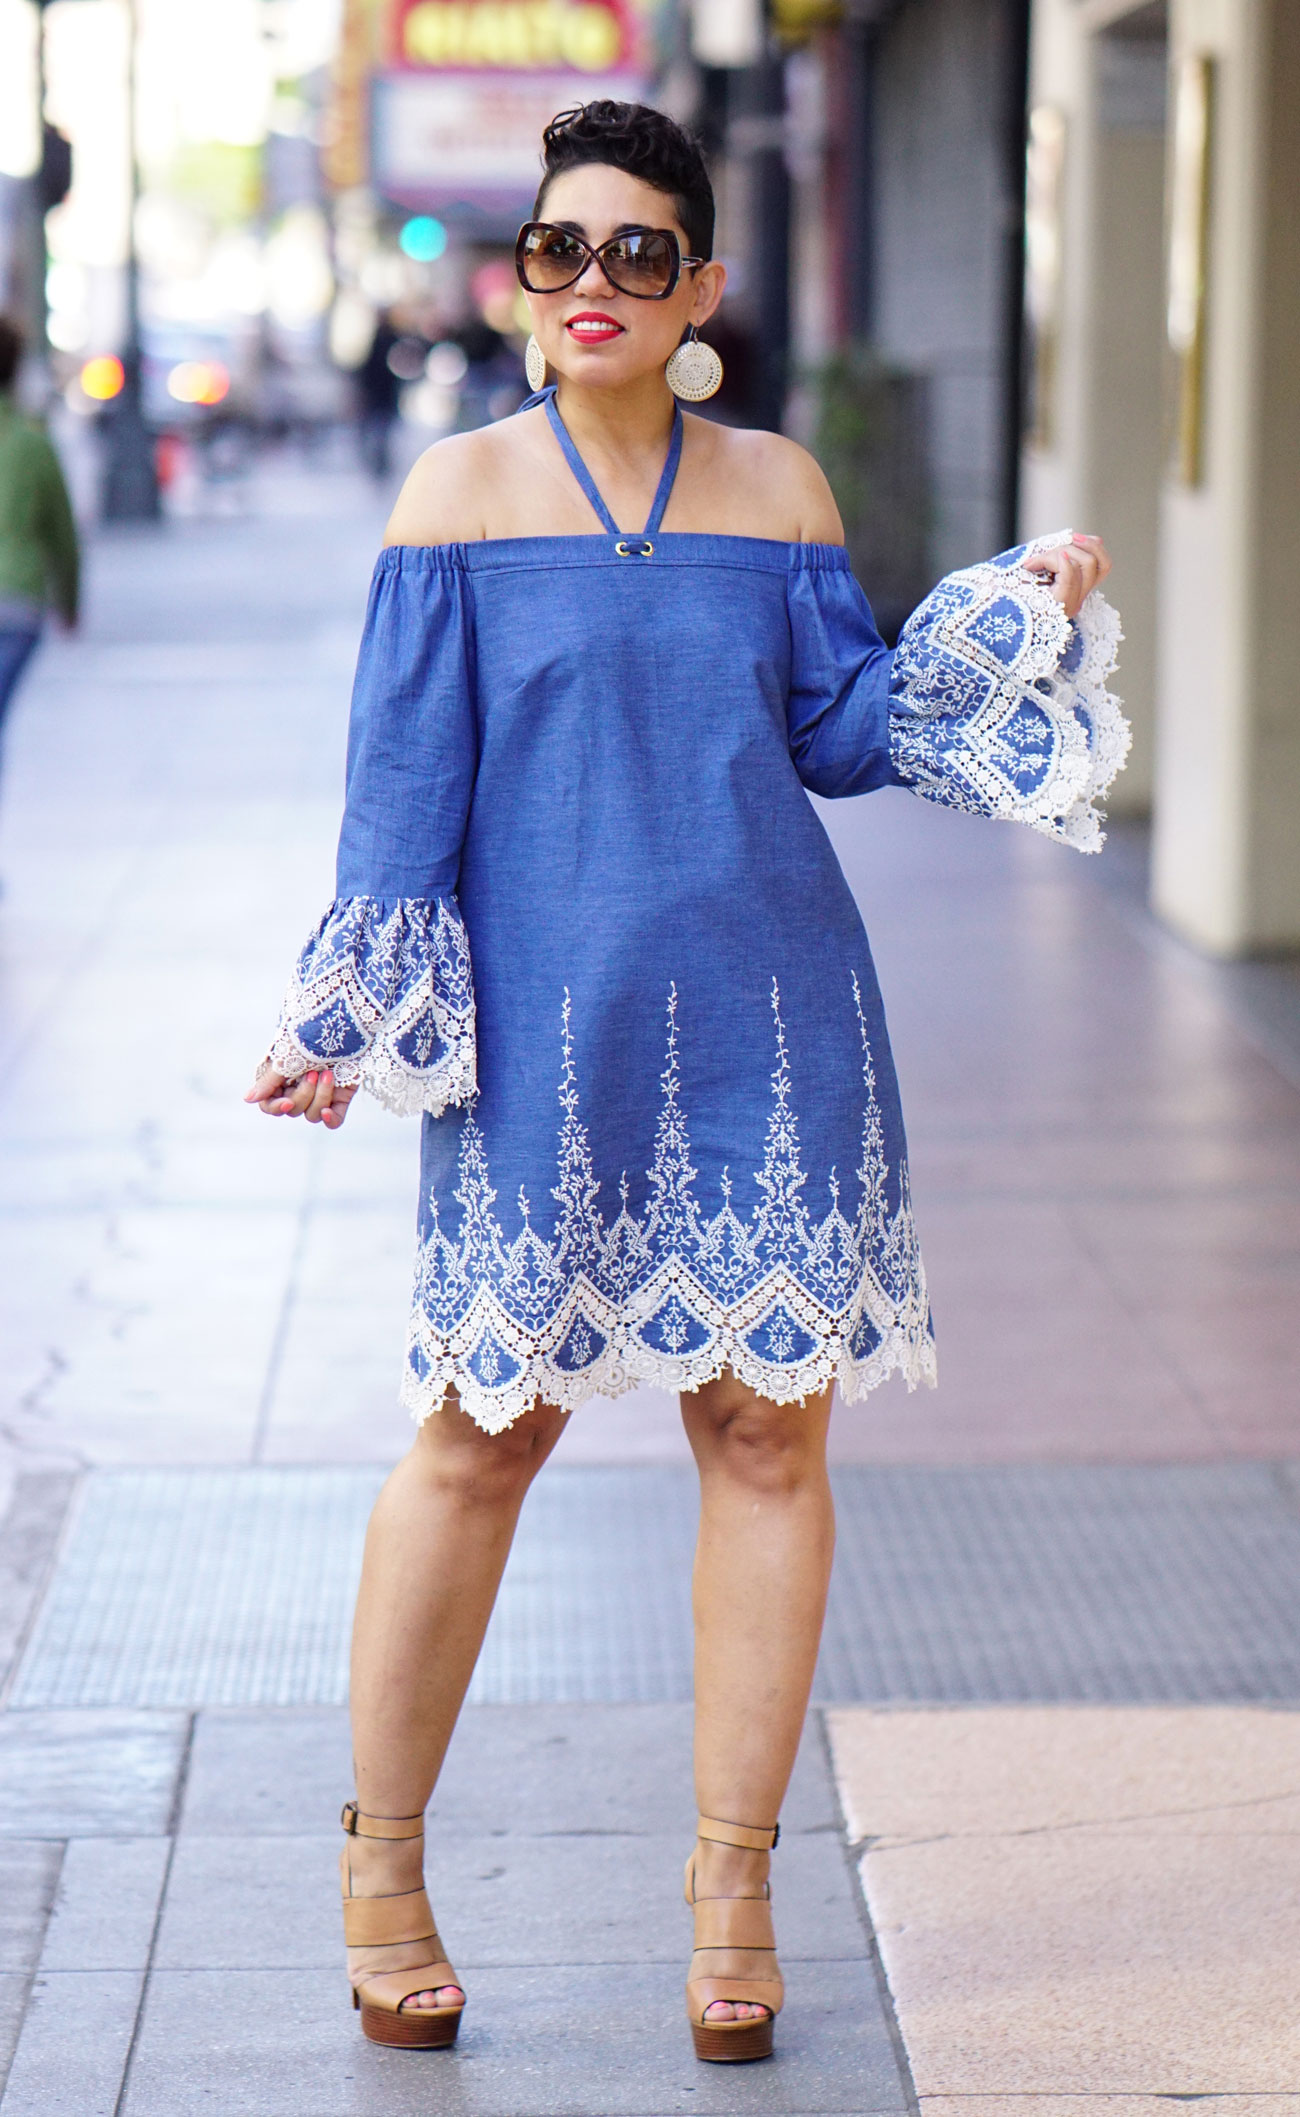 DIY Lace Dress